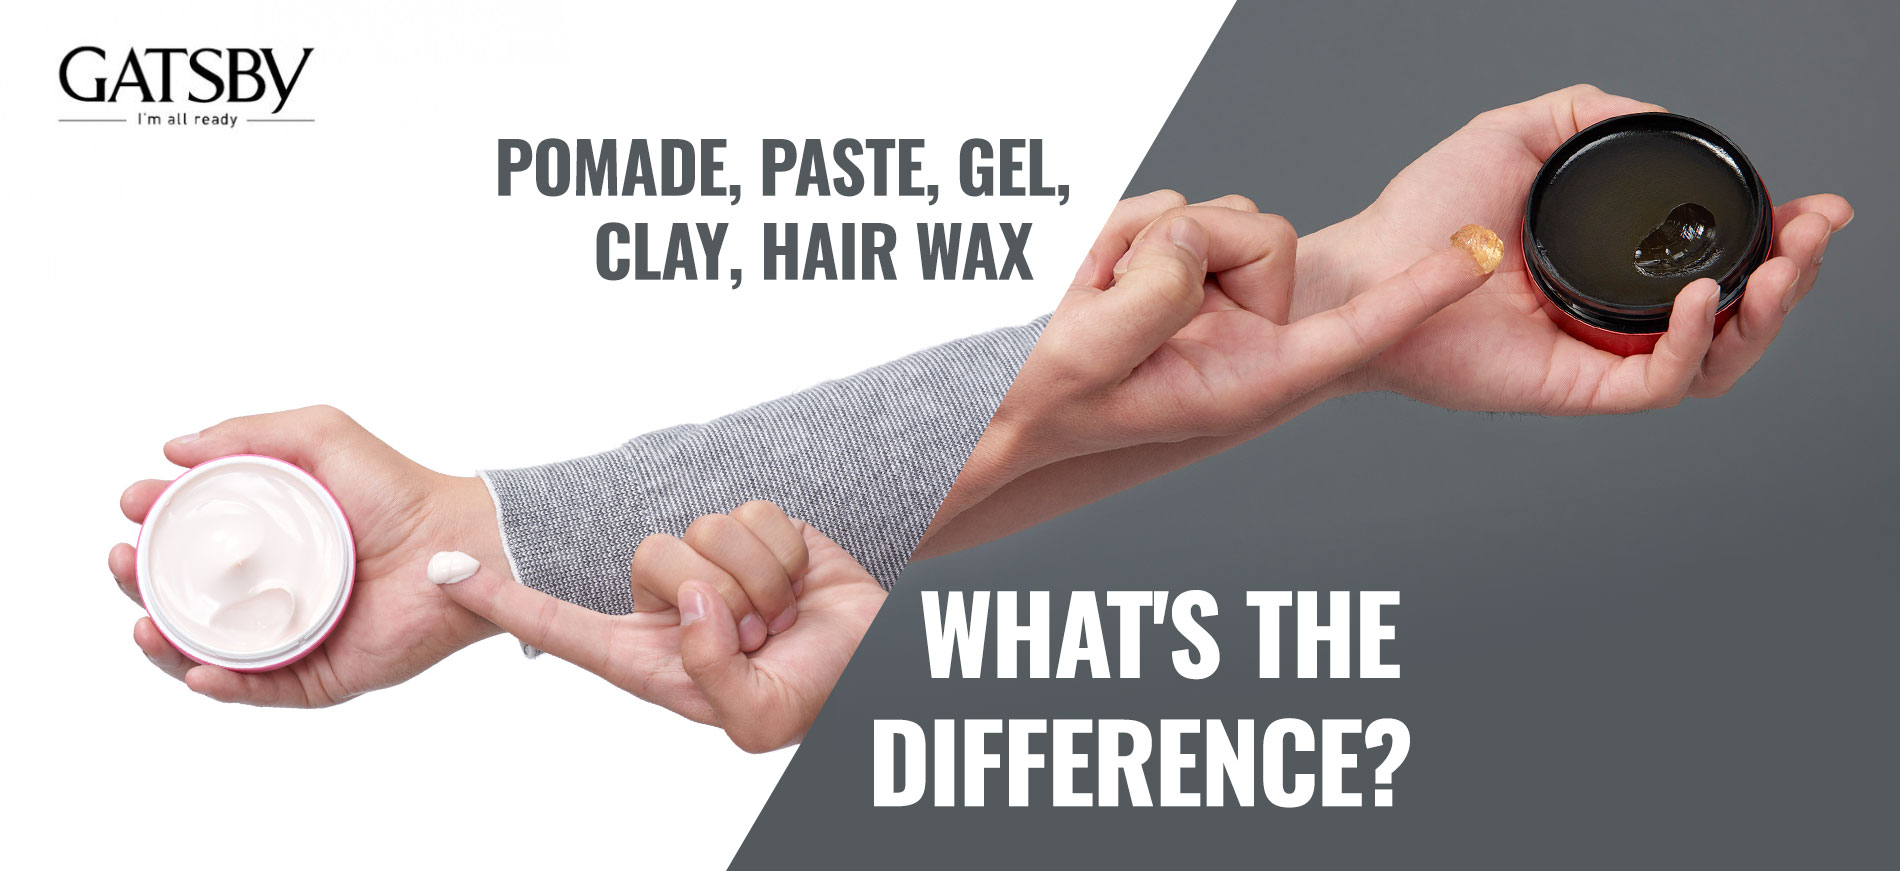 Pomade Paste Gel Clay Hair Wax What S The Difference